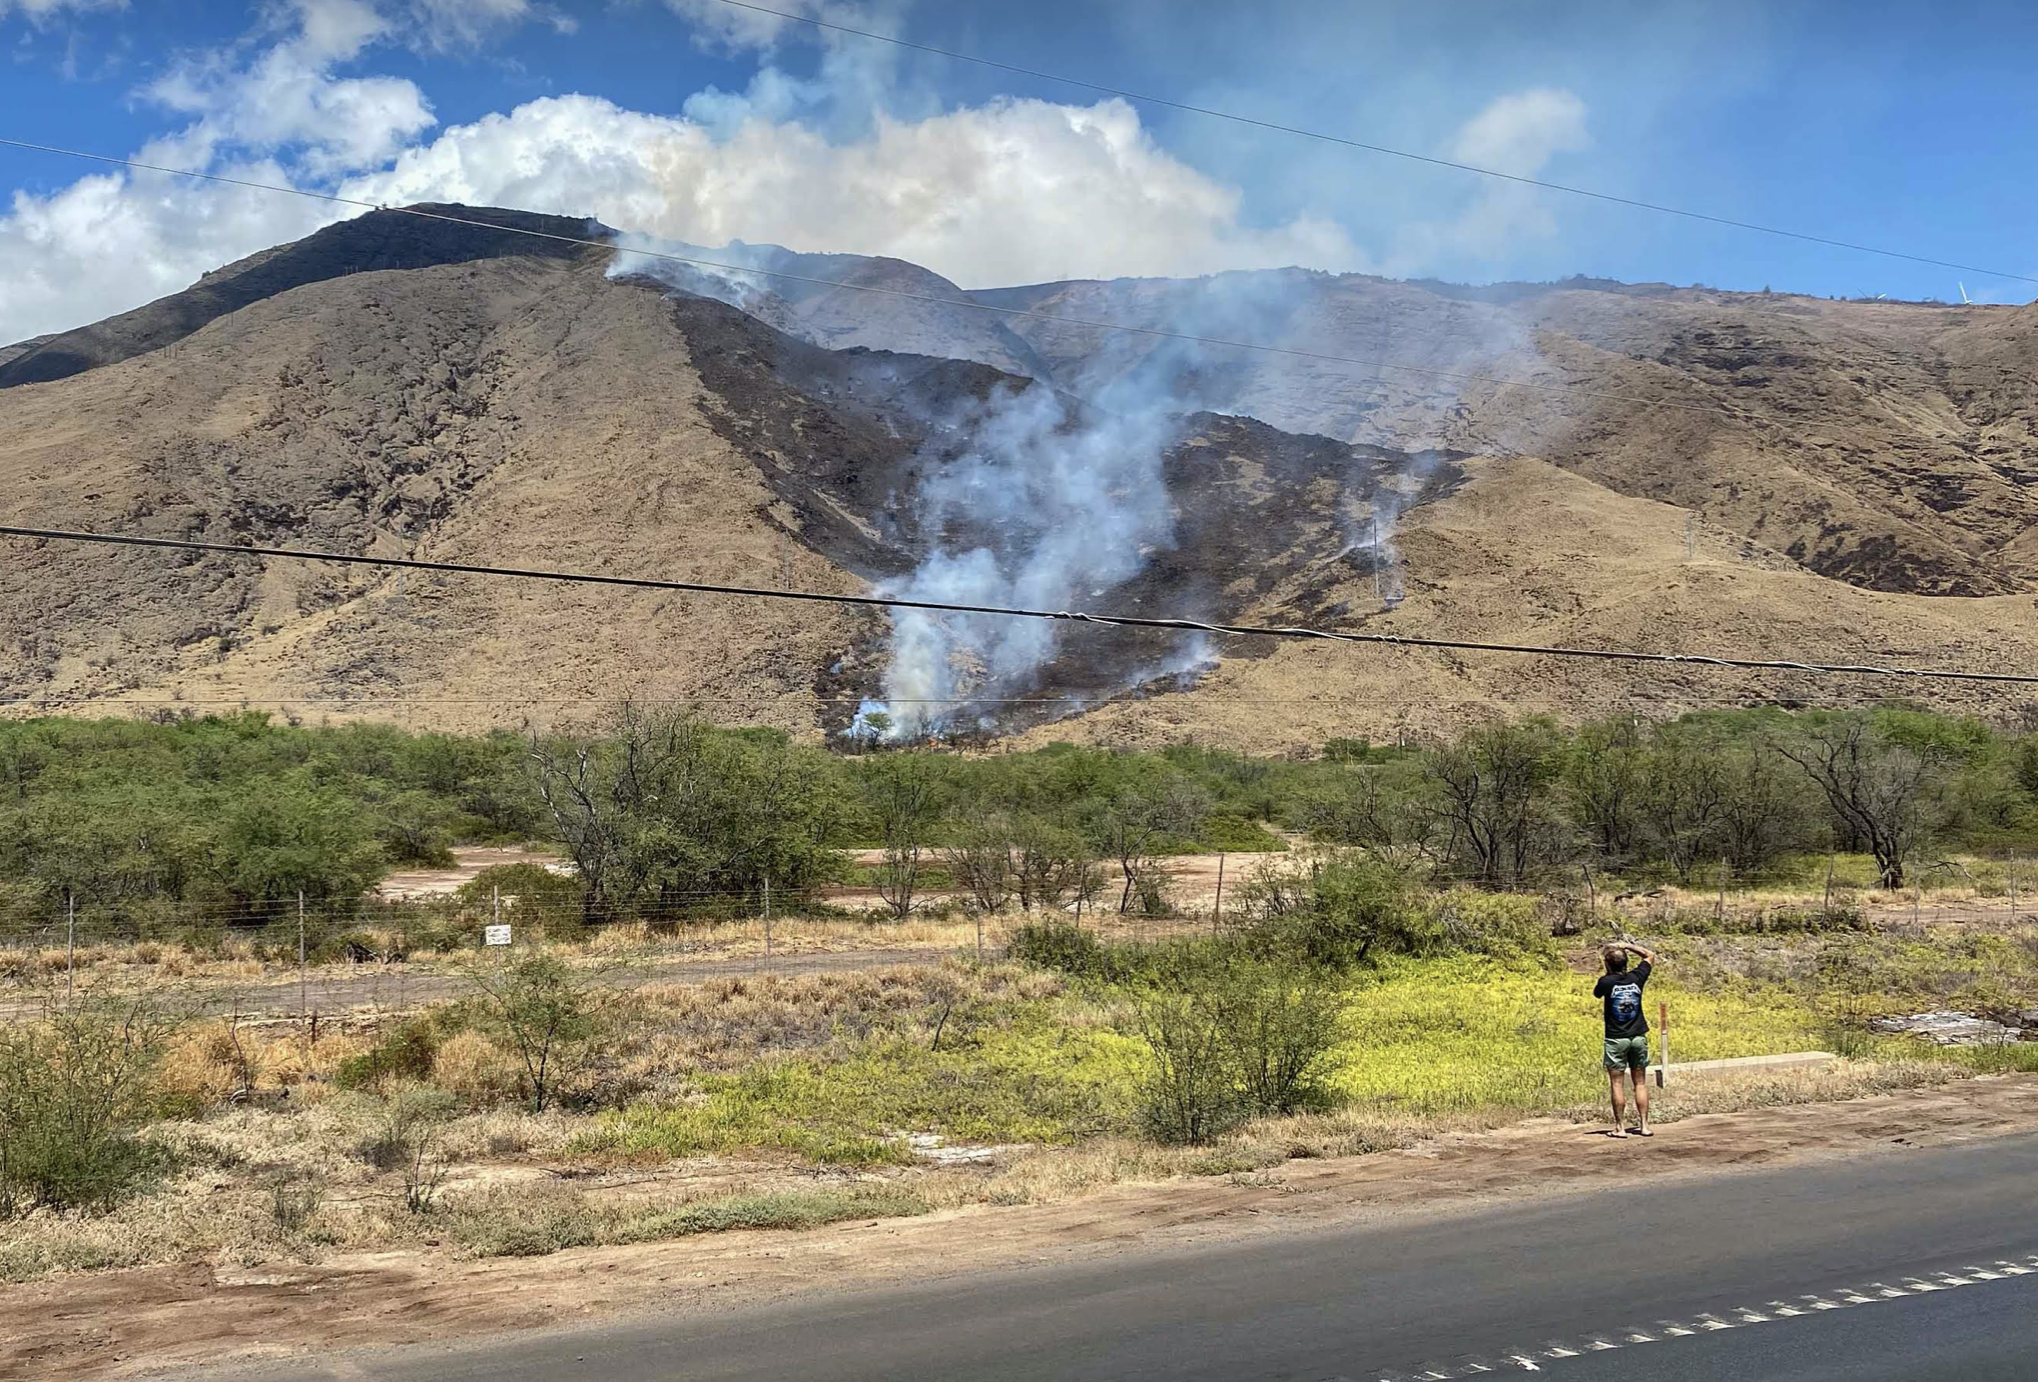 UPDATE: Ukumehame Fire on Maui Blackens 105 Acres, 100% Contained